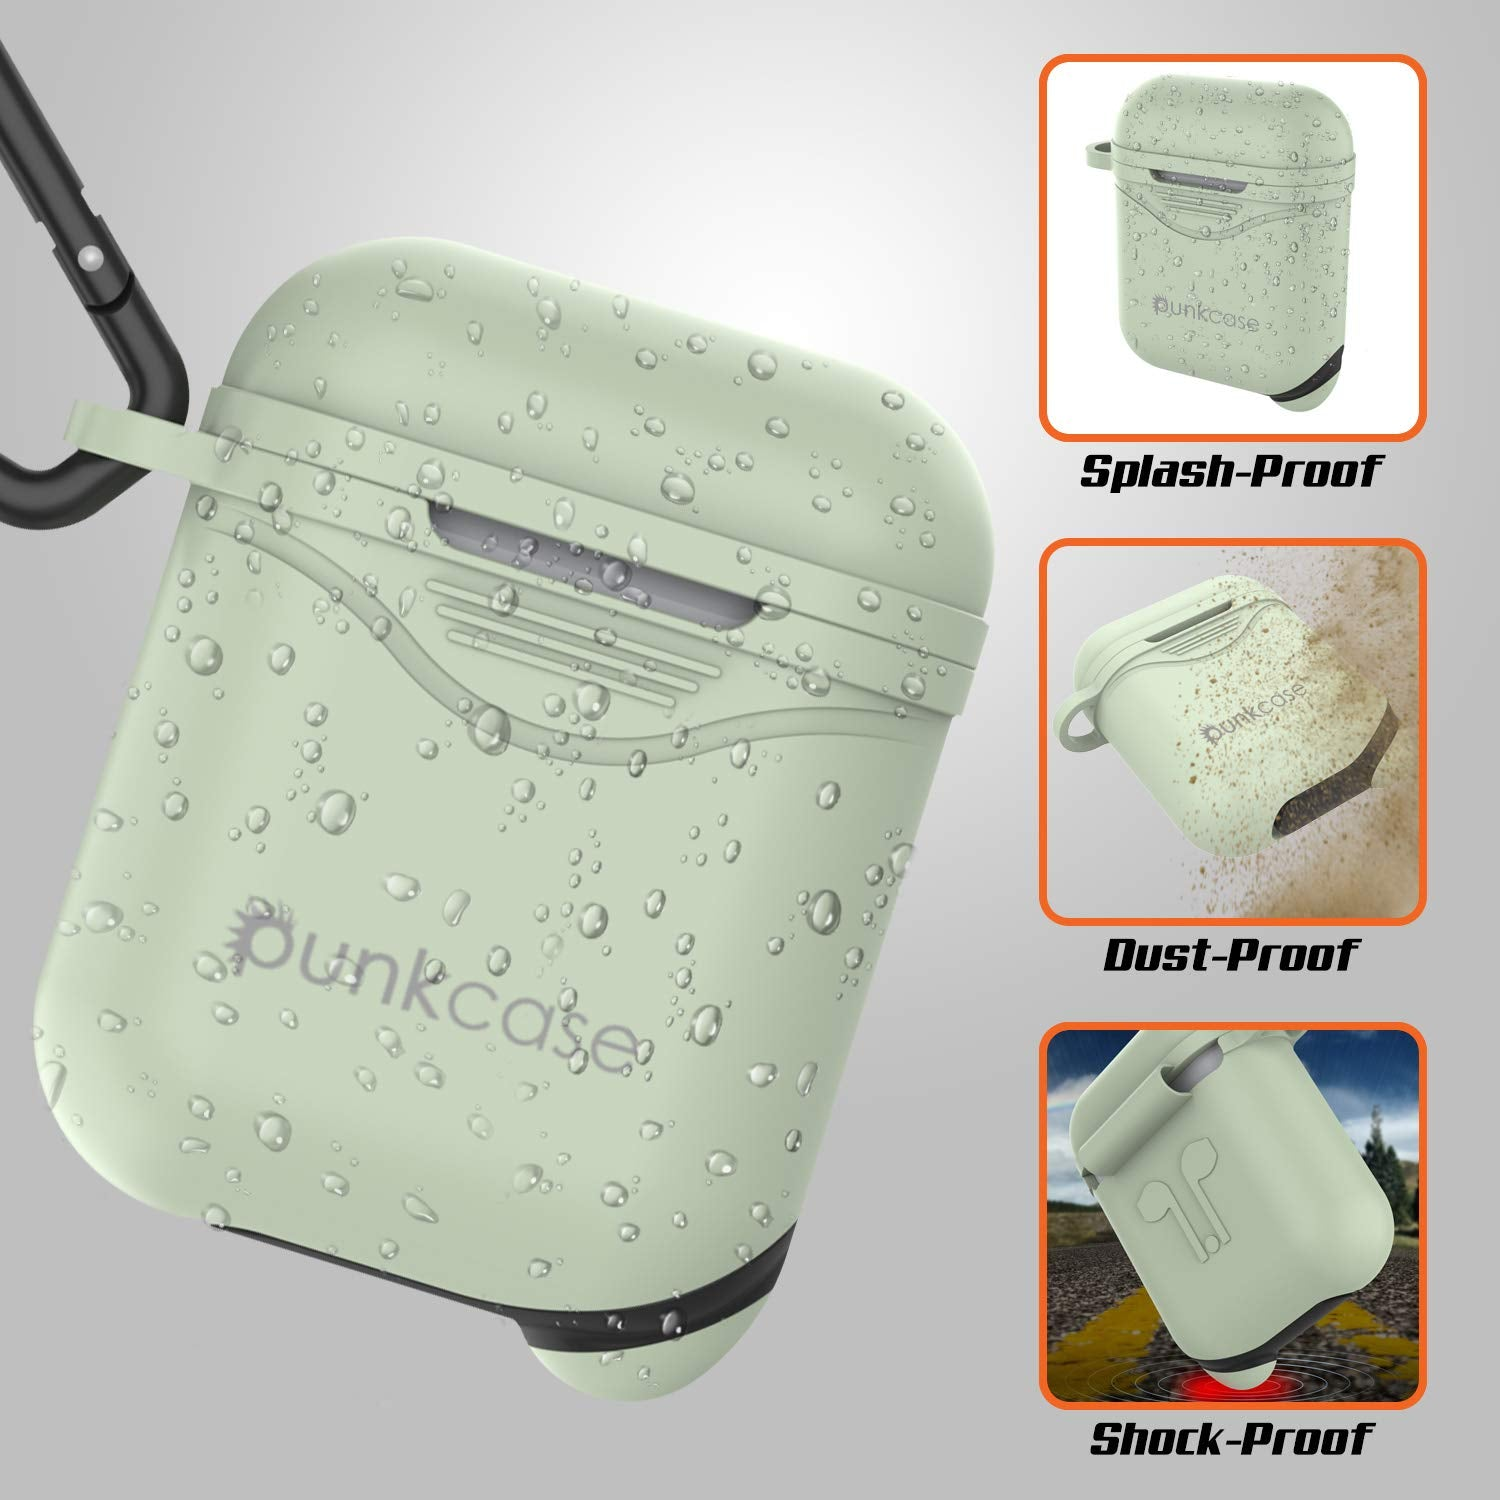 Punkcase Airpod Case with Keychain (Mint-Green)